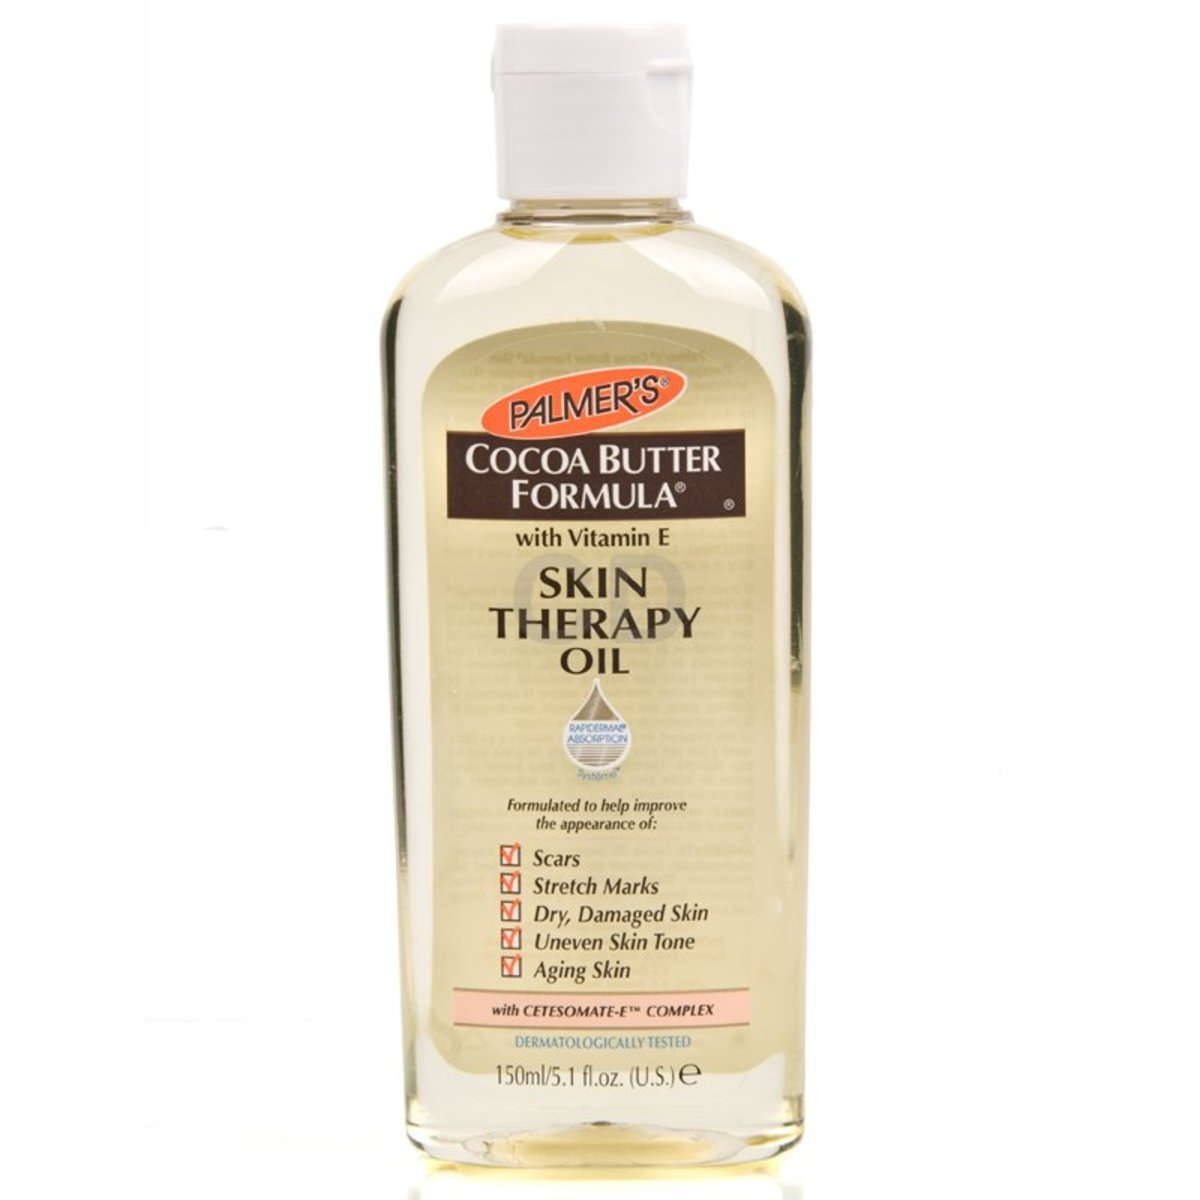 Palmers cocoa butter skin therapy oil acne scars